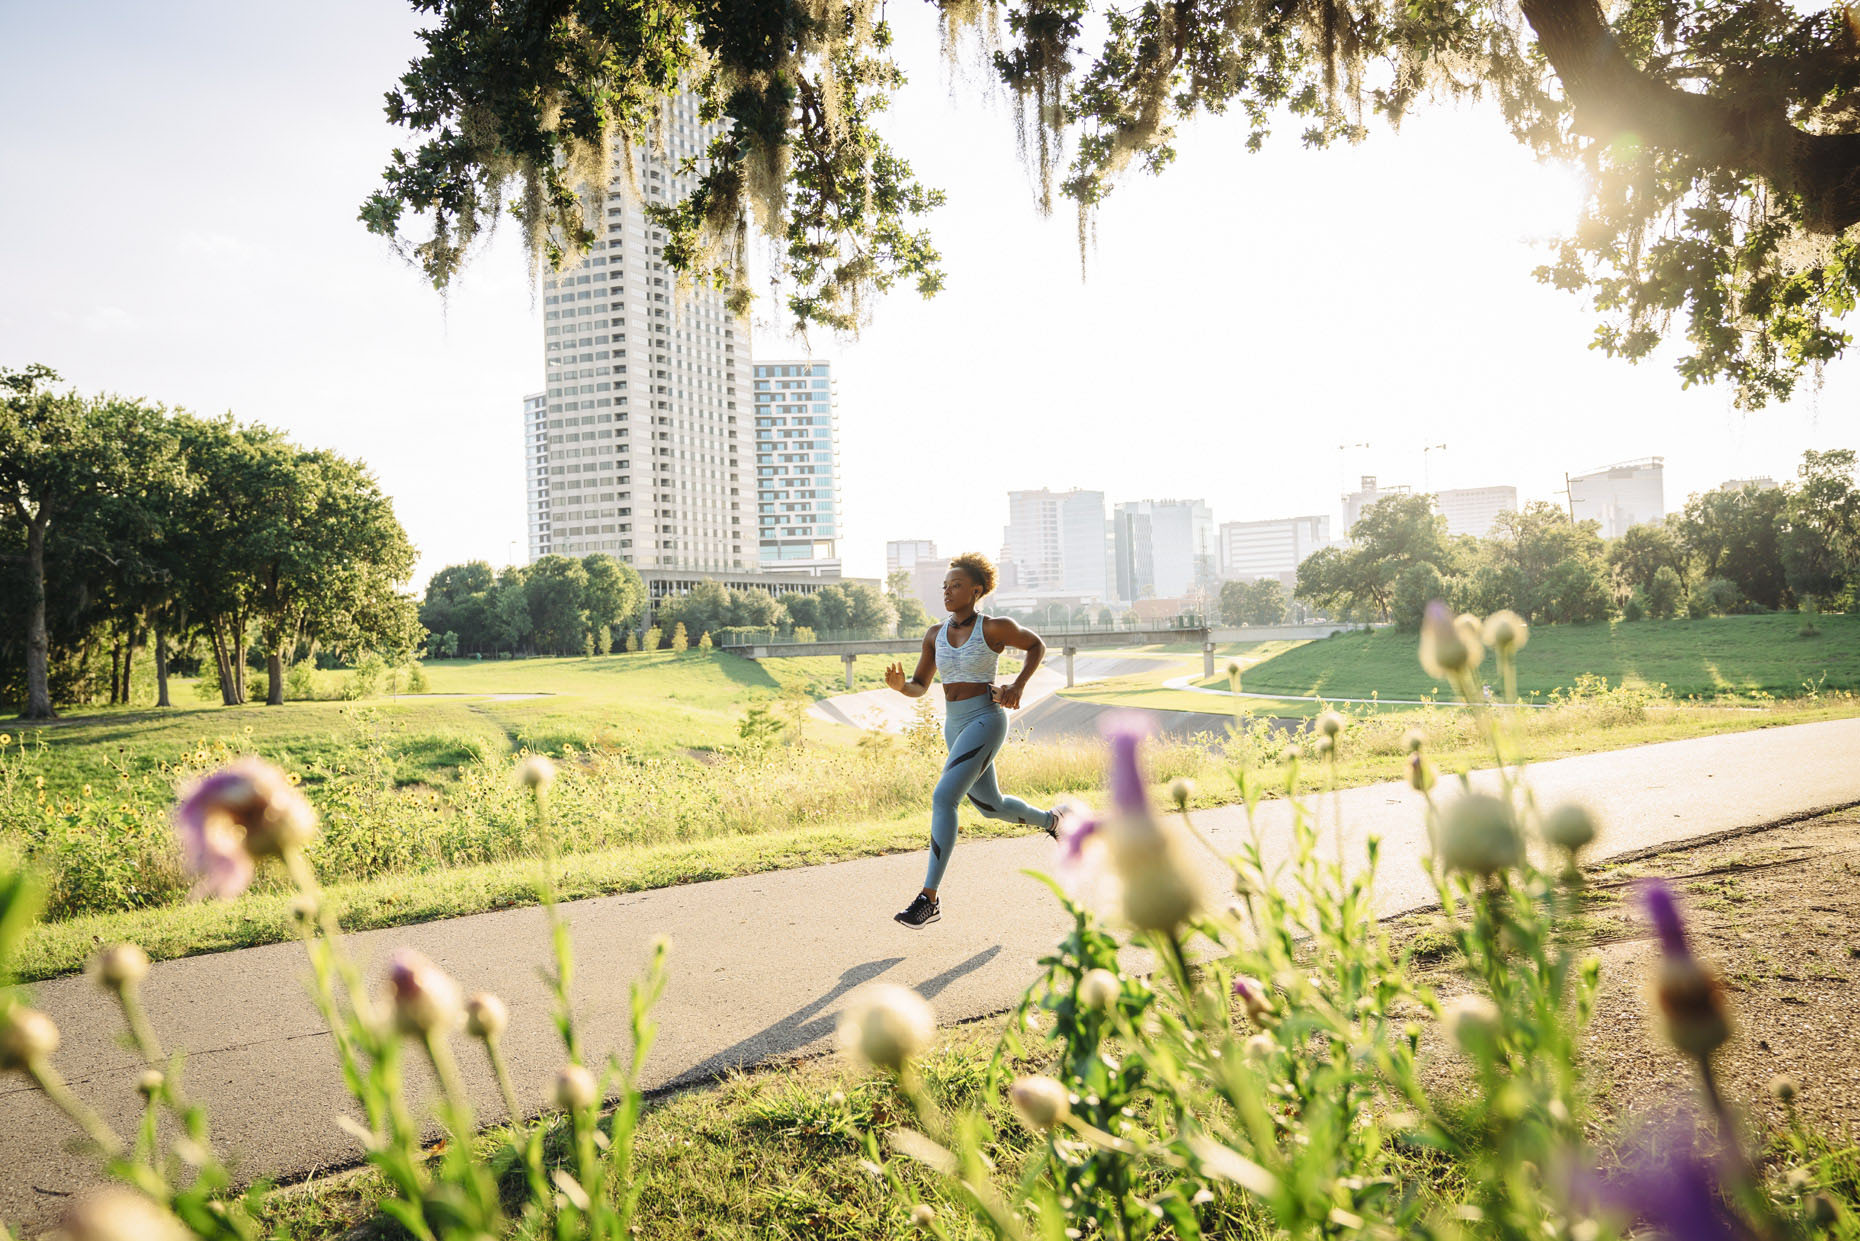 Black woman running in urban park